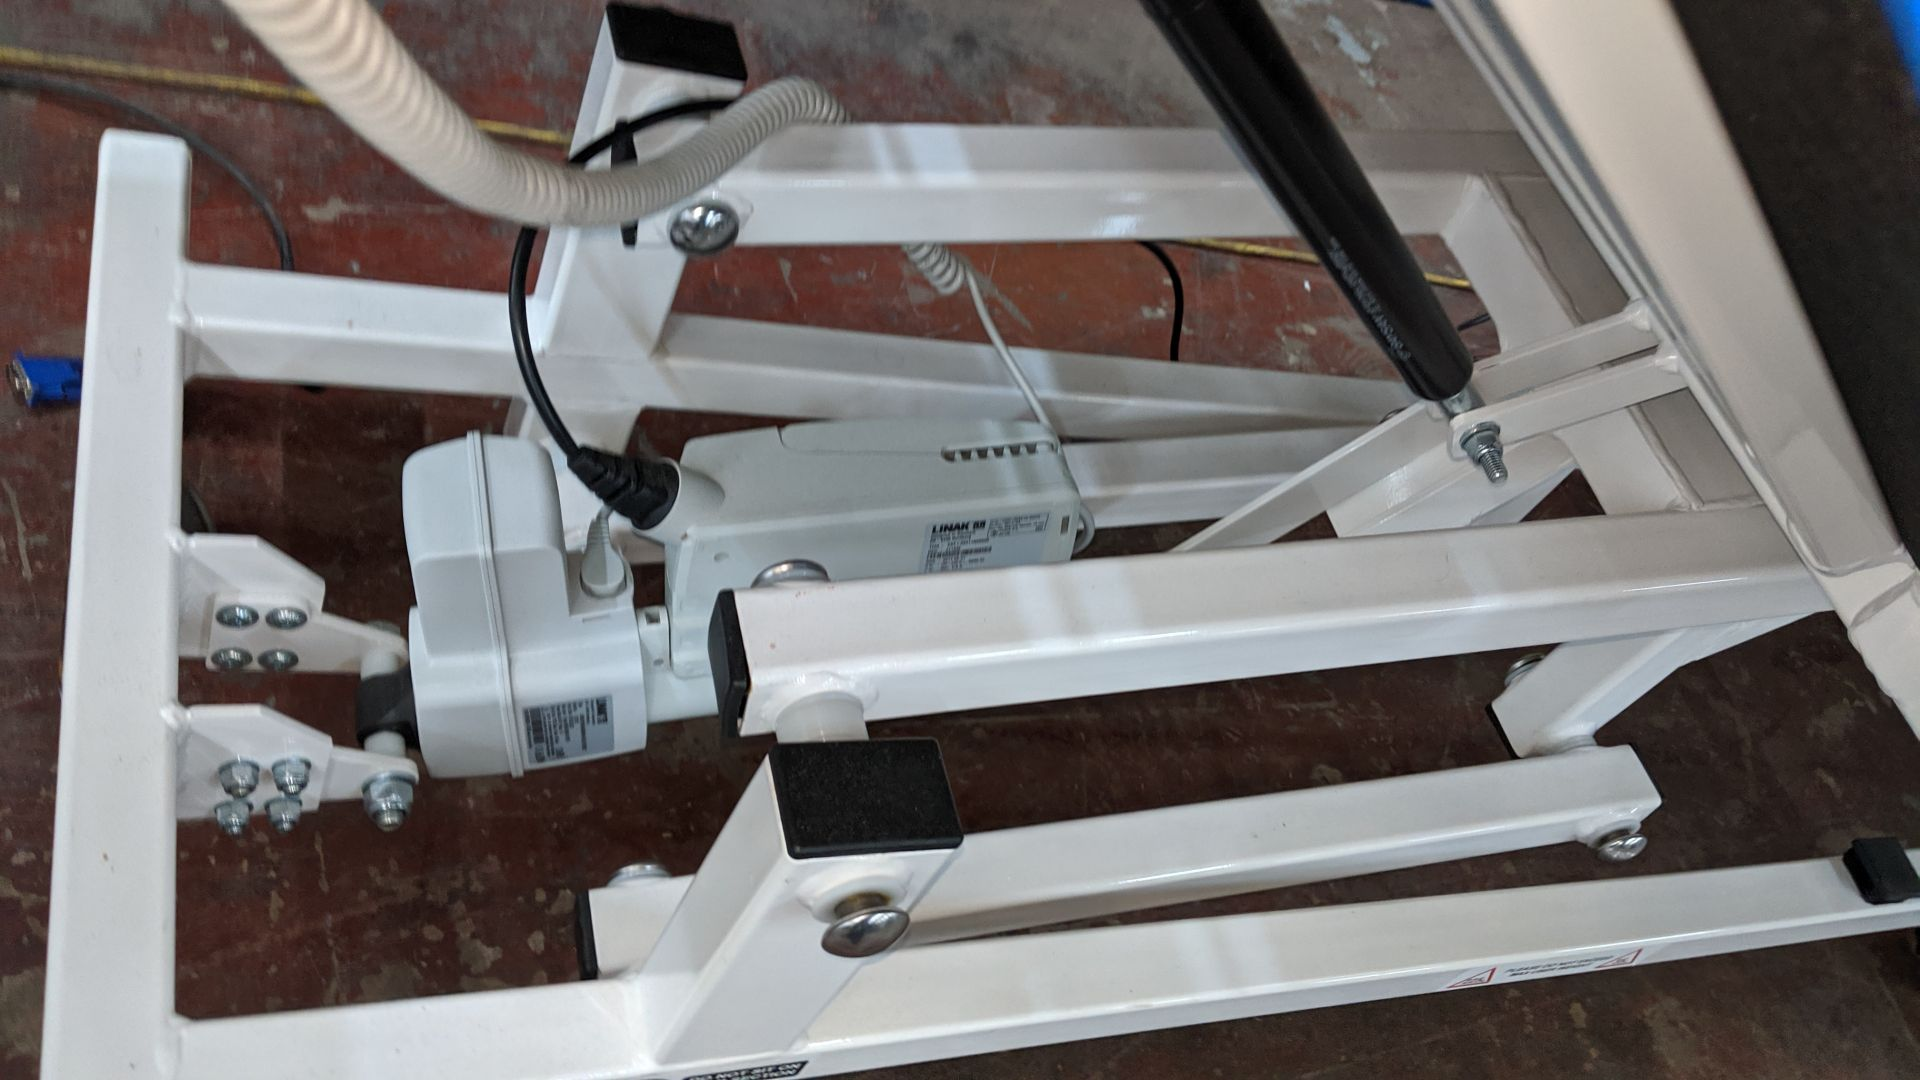 Lot 679 - Sunflower Medical Equipment mobile electrically operated padded examination table with wired linak